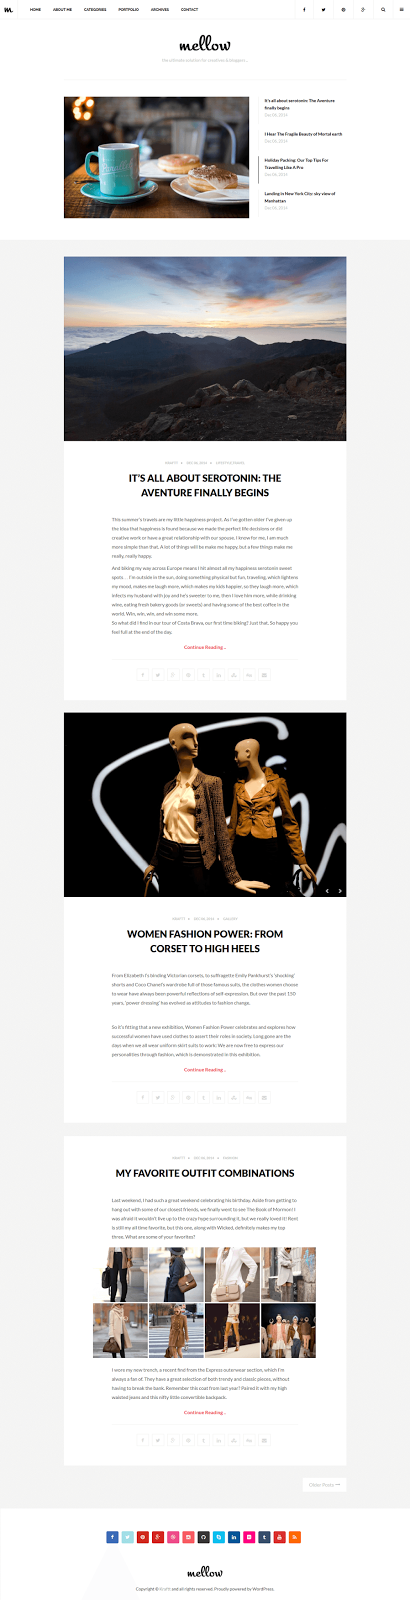 Responsive WordPress Blog Theme 2015